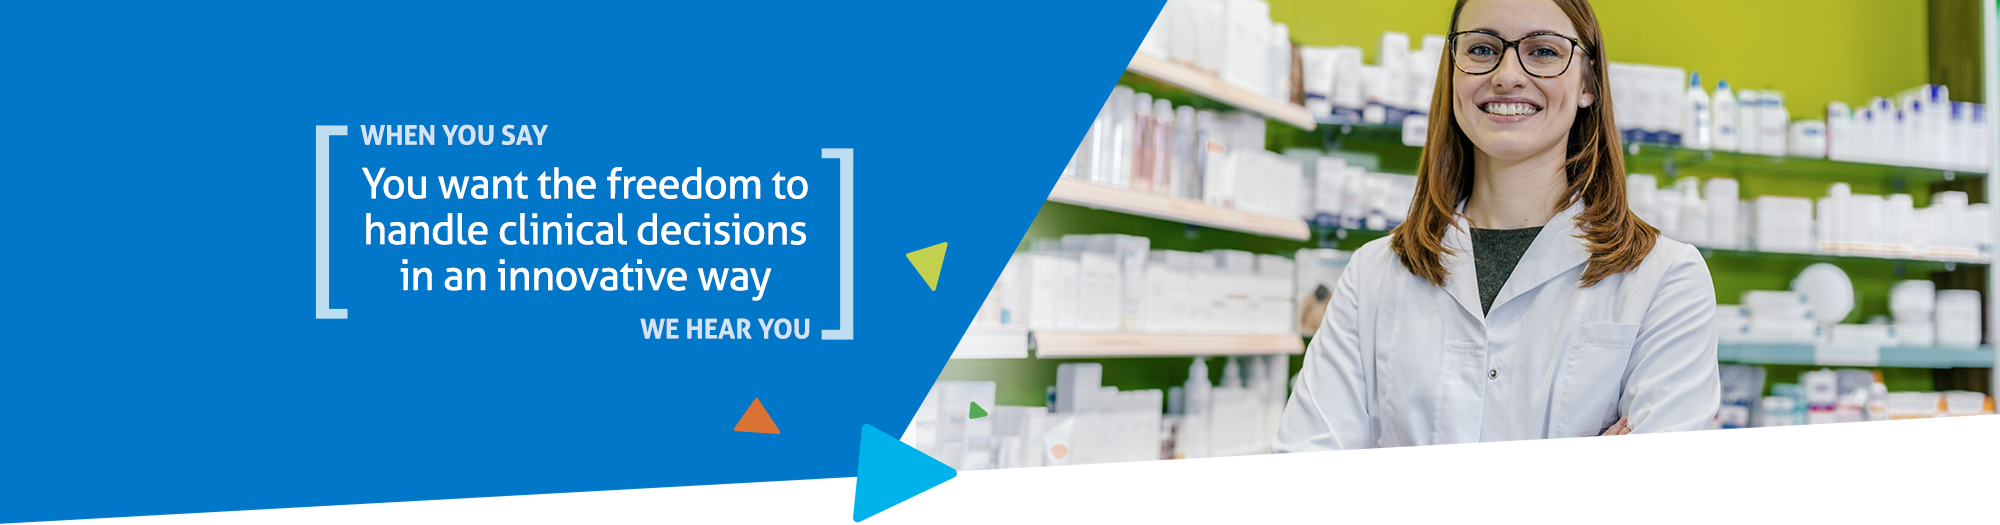 When you say you want freedom to handle clinical decisions in an innovative way, we hear you